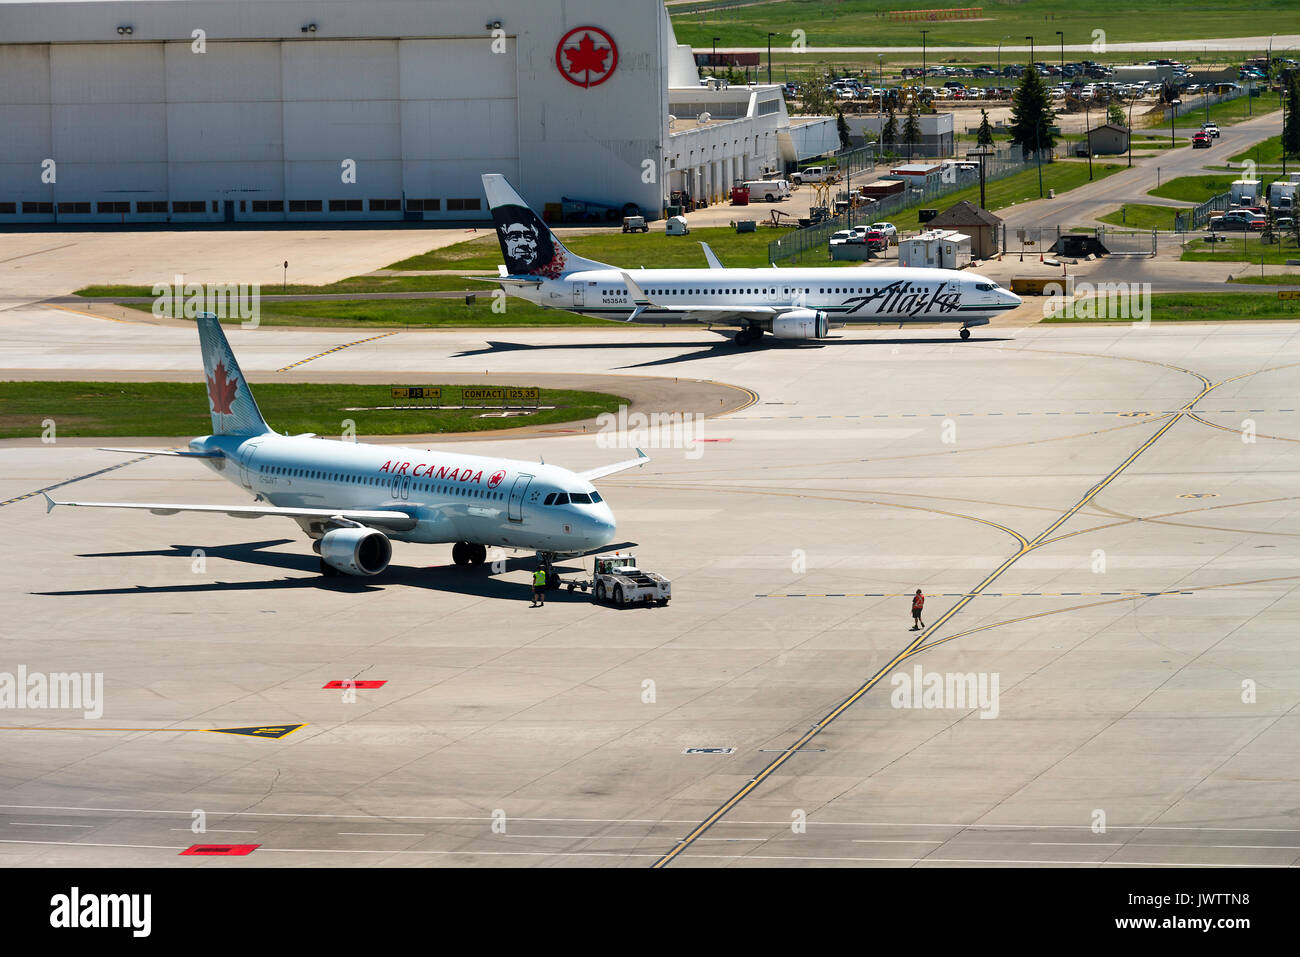 Air Canada Airline Airbus A320-214 Airliner C-GJVT Being Towed to Stand and Alaska Airlines Boeing 737-890(w) Taxiing at Calgary  Alberta Canada - Stock Image